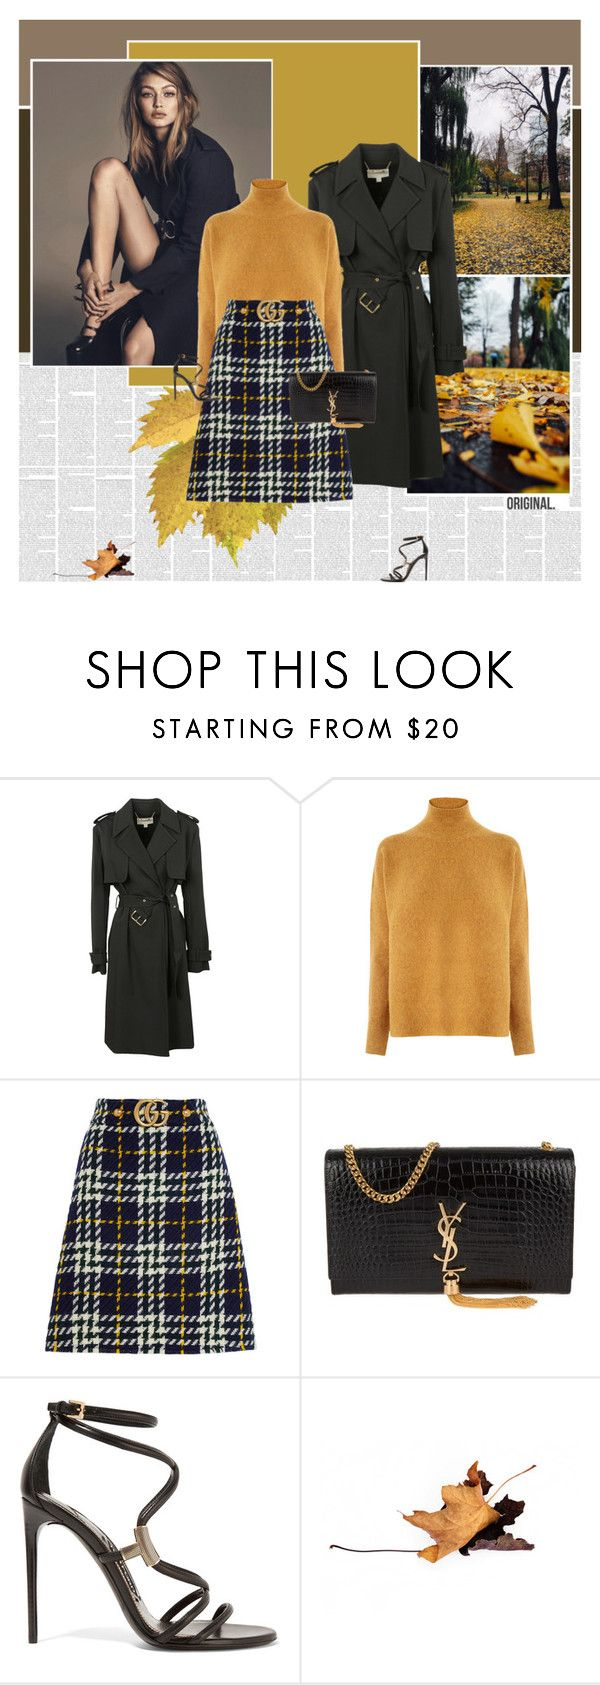 """Autumn in Boston"" by stephaniee90 ❤ liked on Polyvore featuring Michael Kors, Warehouse, Gucci, Yves Saint Laurent and Tom Ford"